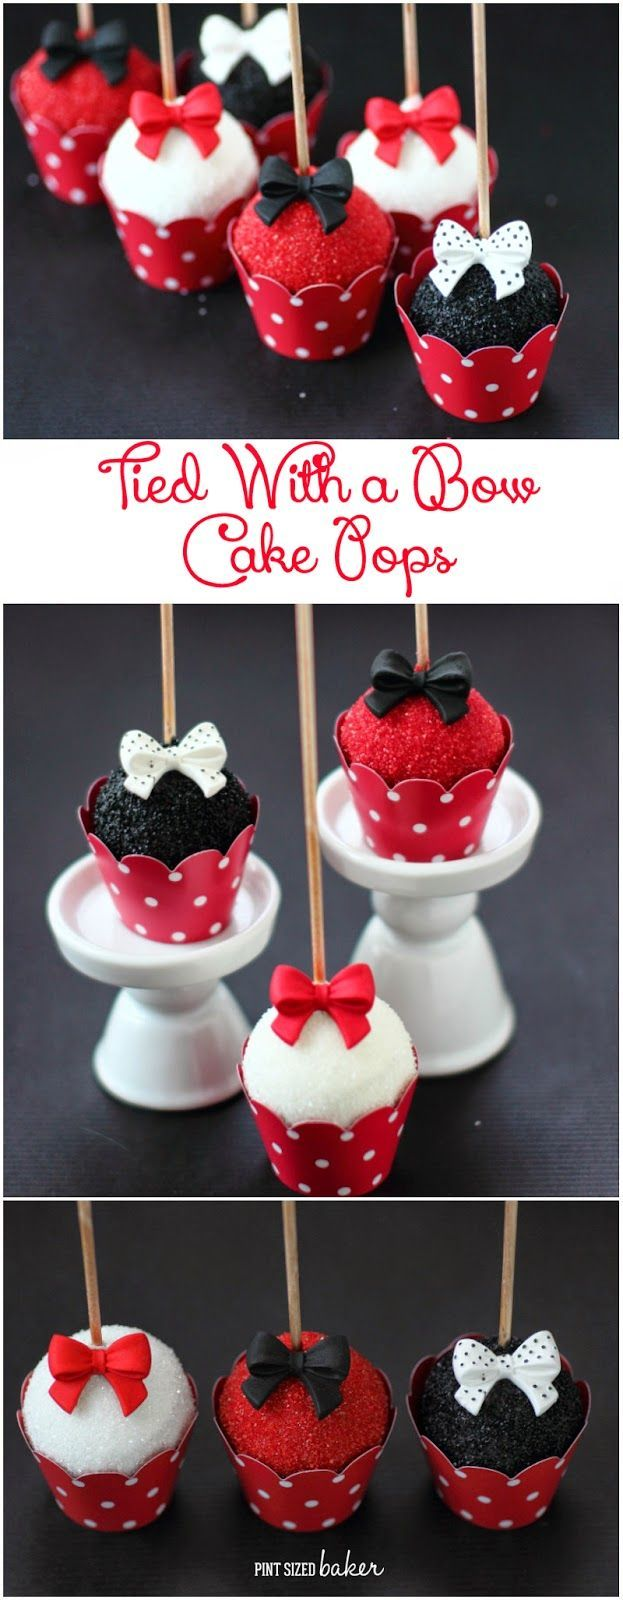 Perfectly poised cake pops! Easy to make and beautifully stunning! Red, black, and white are perfect for any event!  Get the tutorial and supplies from Pint Sized Baker.